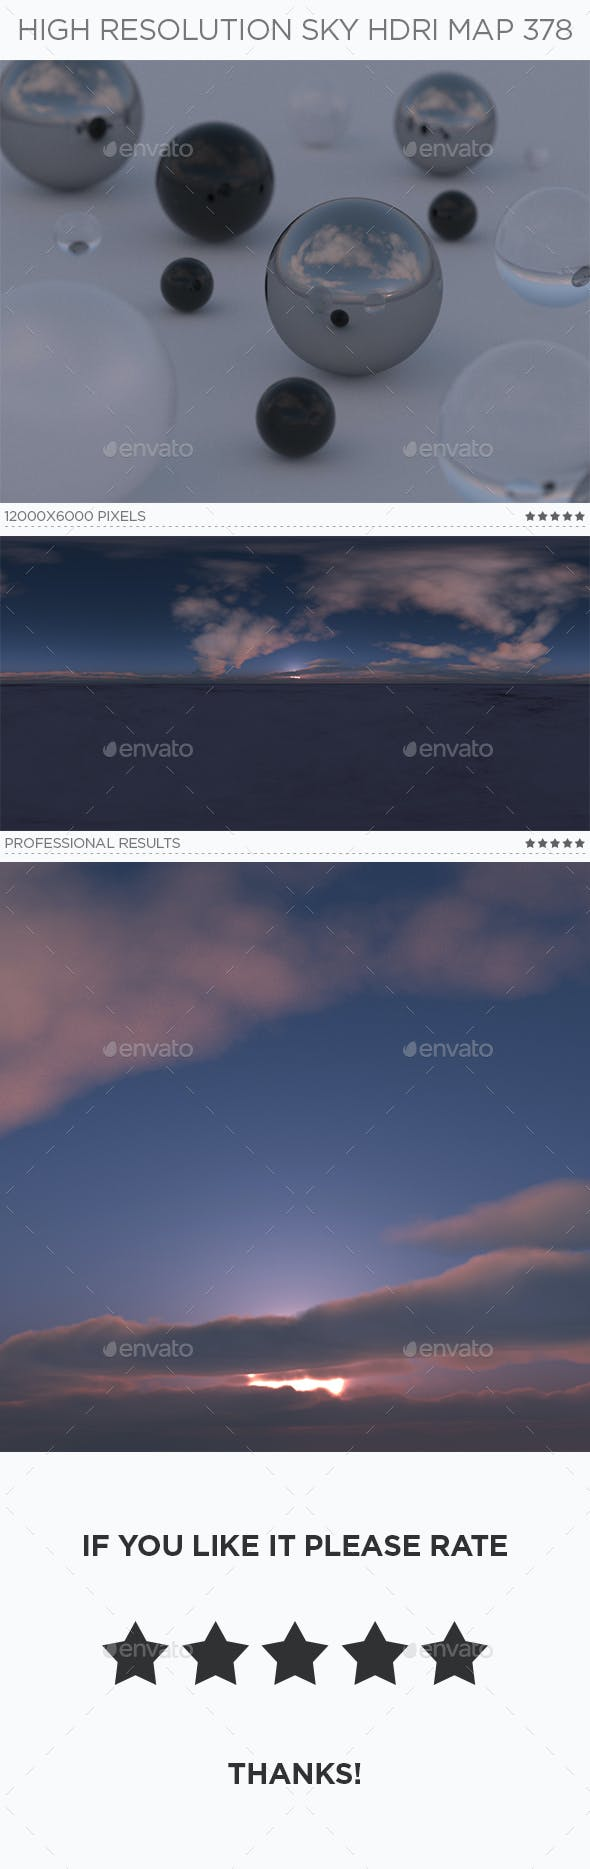 High Resolution Sky HDRi Map 378 - 3DOcean Item for Sale